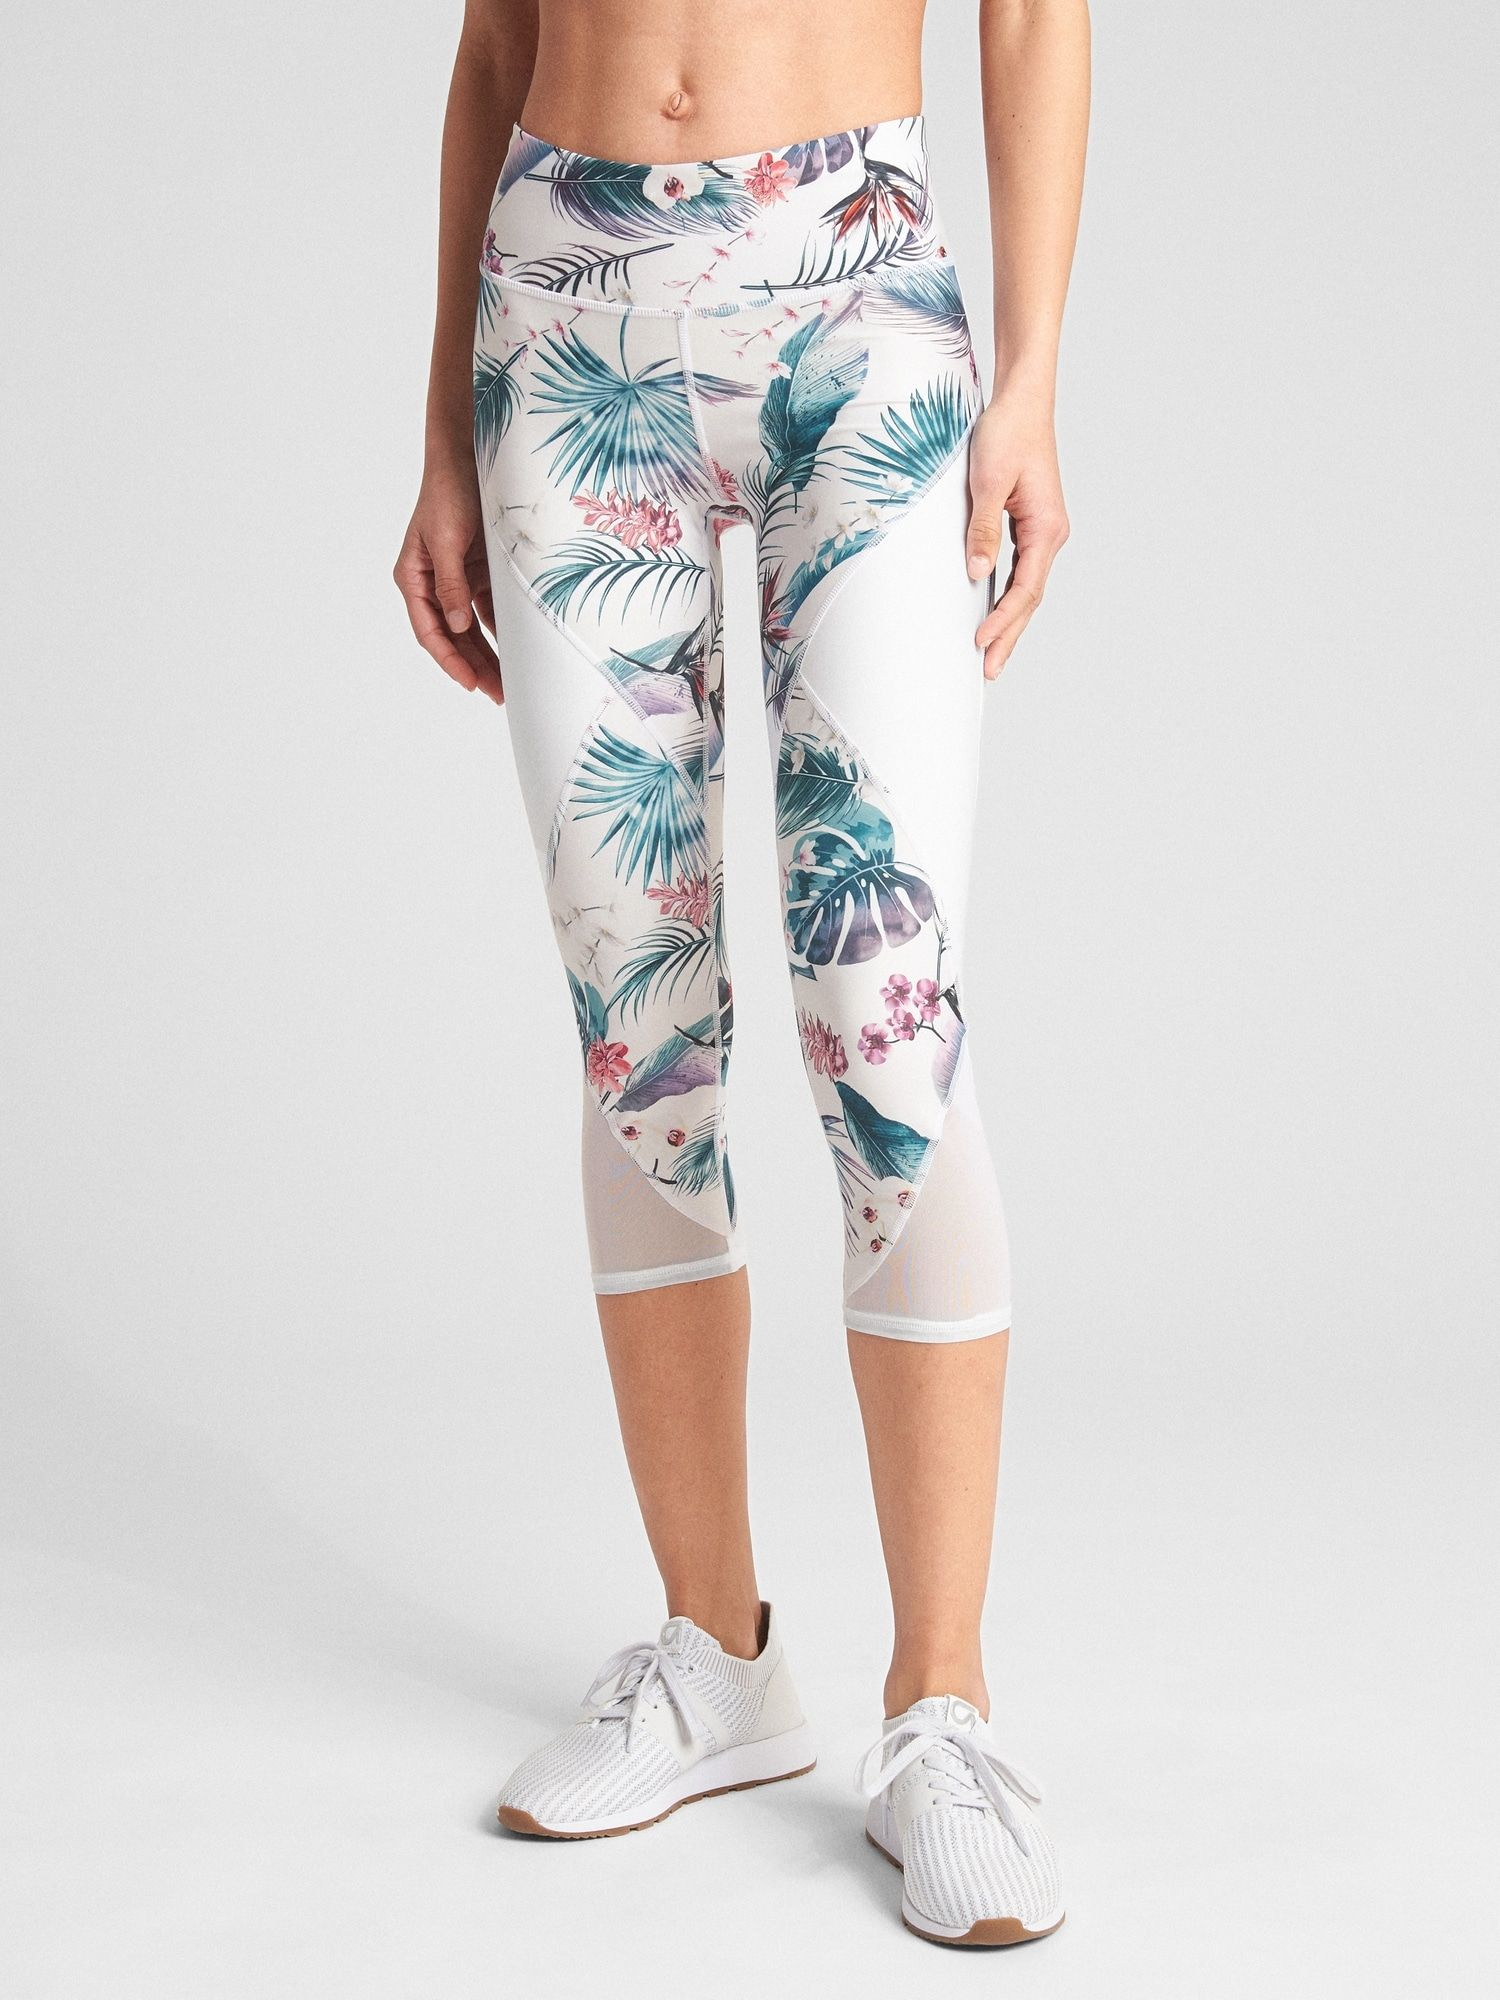 bd1bb31fa3 Gap Fit, GFast Mid Rise Capris in Eclipse, in Tropical Floral, $70